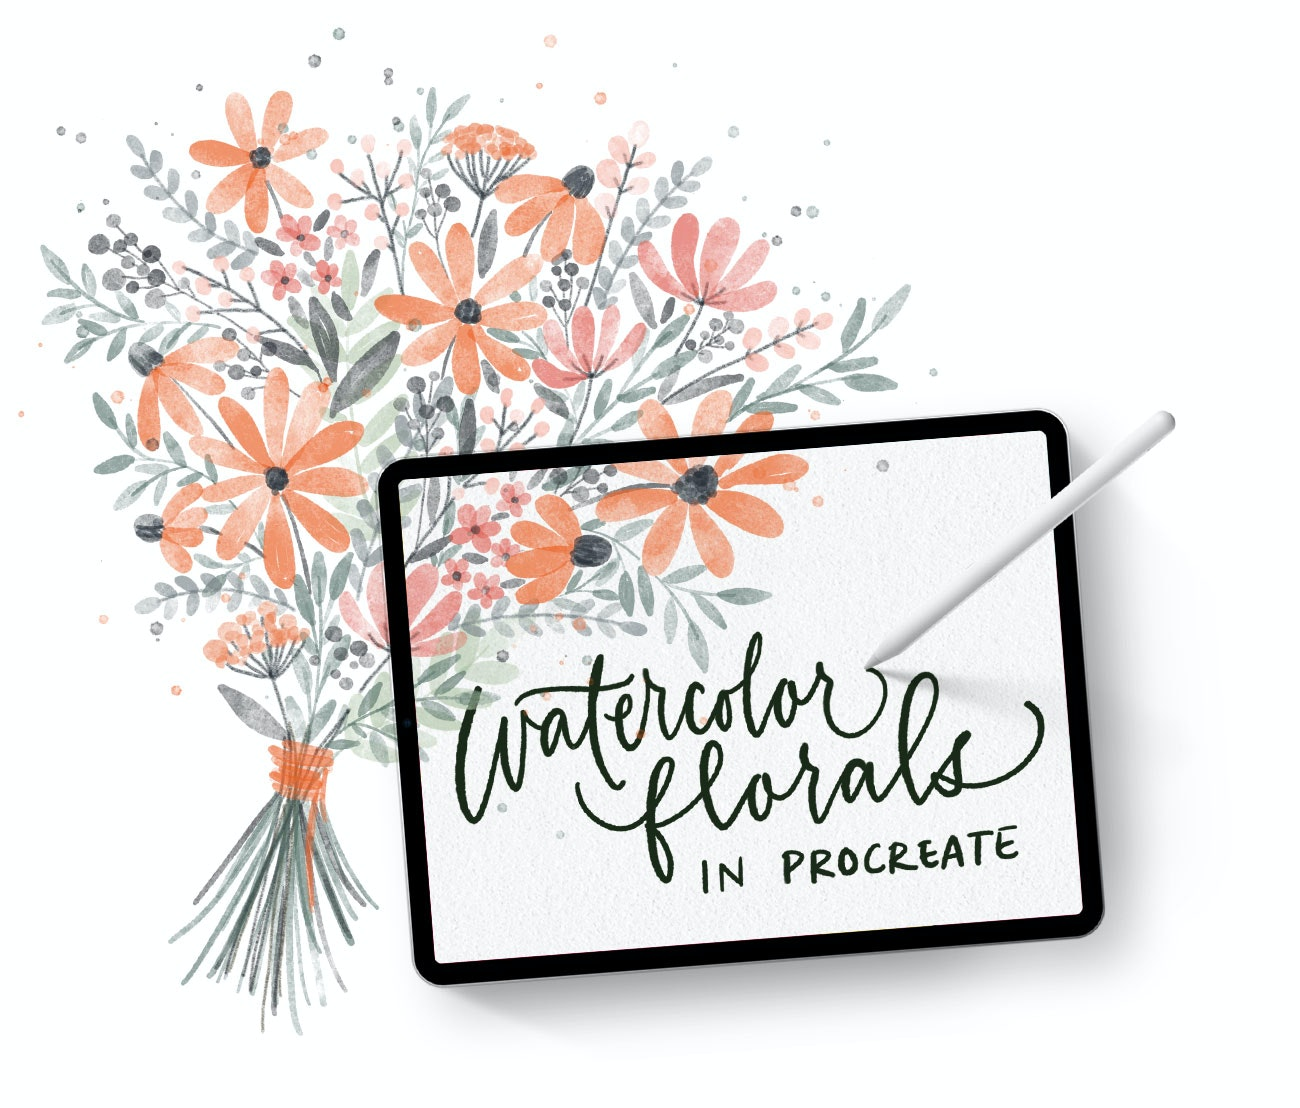 Learn how to digitally paint, vectorize and reuse watercolor florals in Procreate